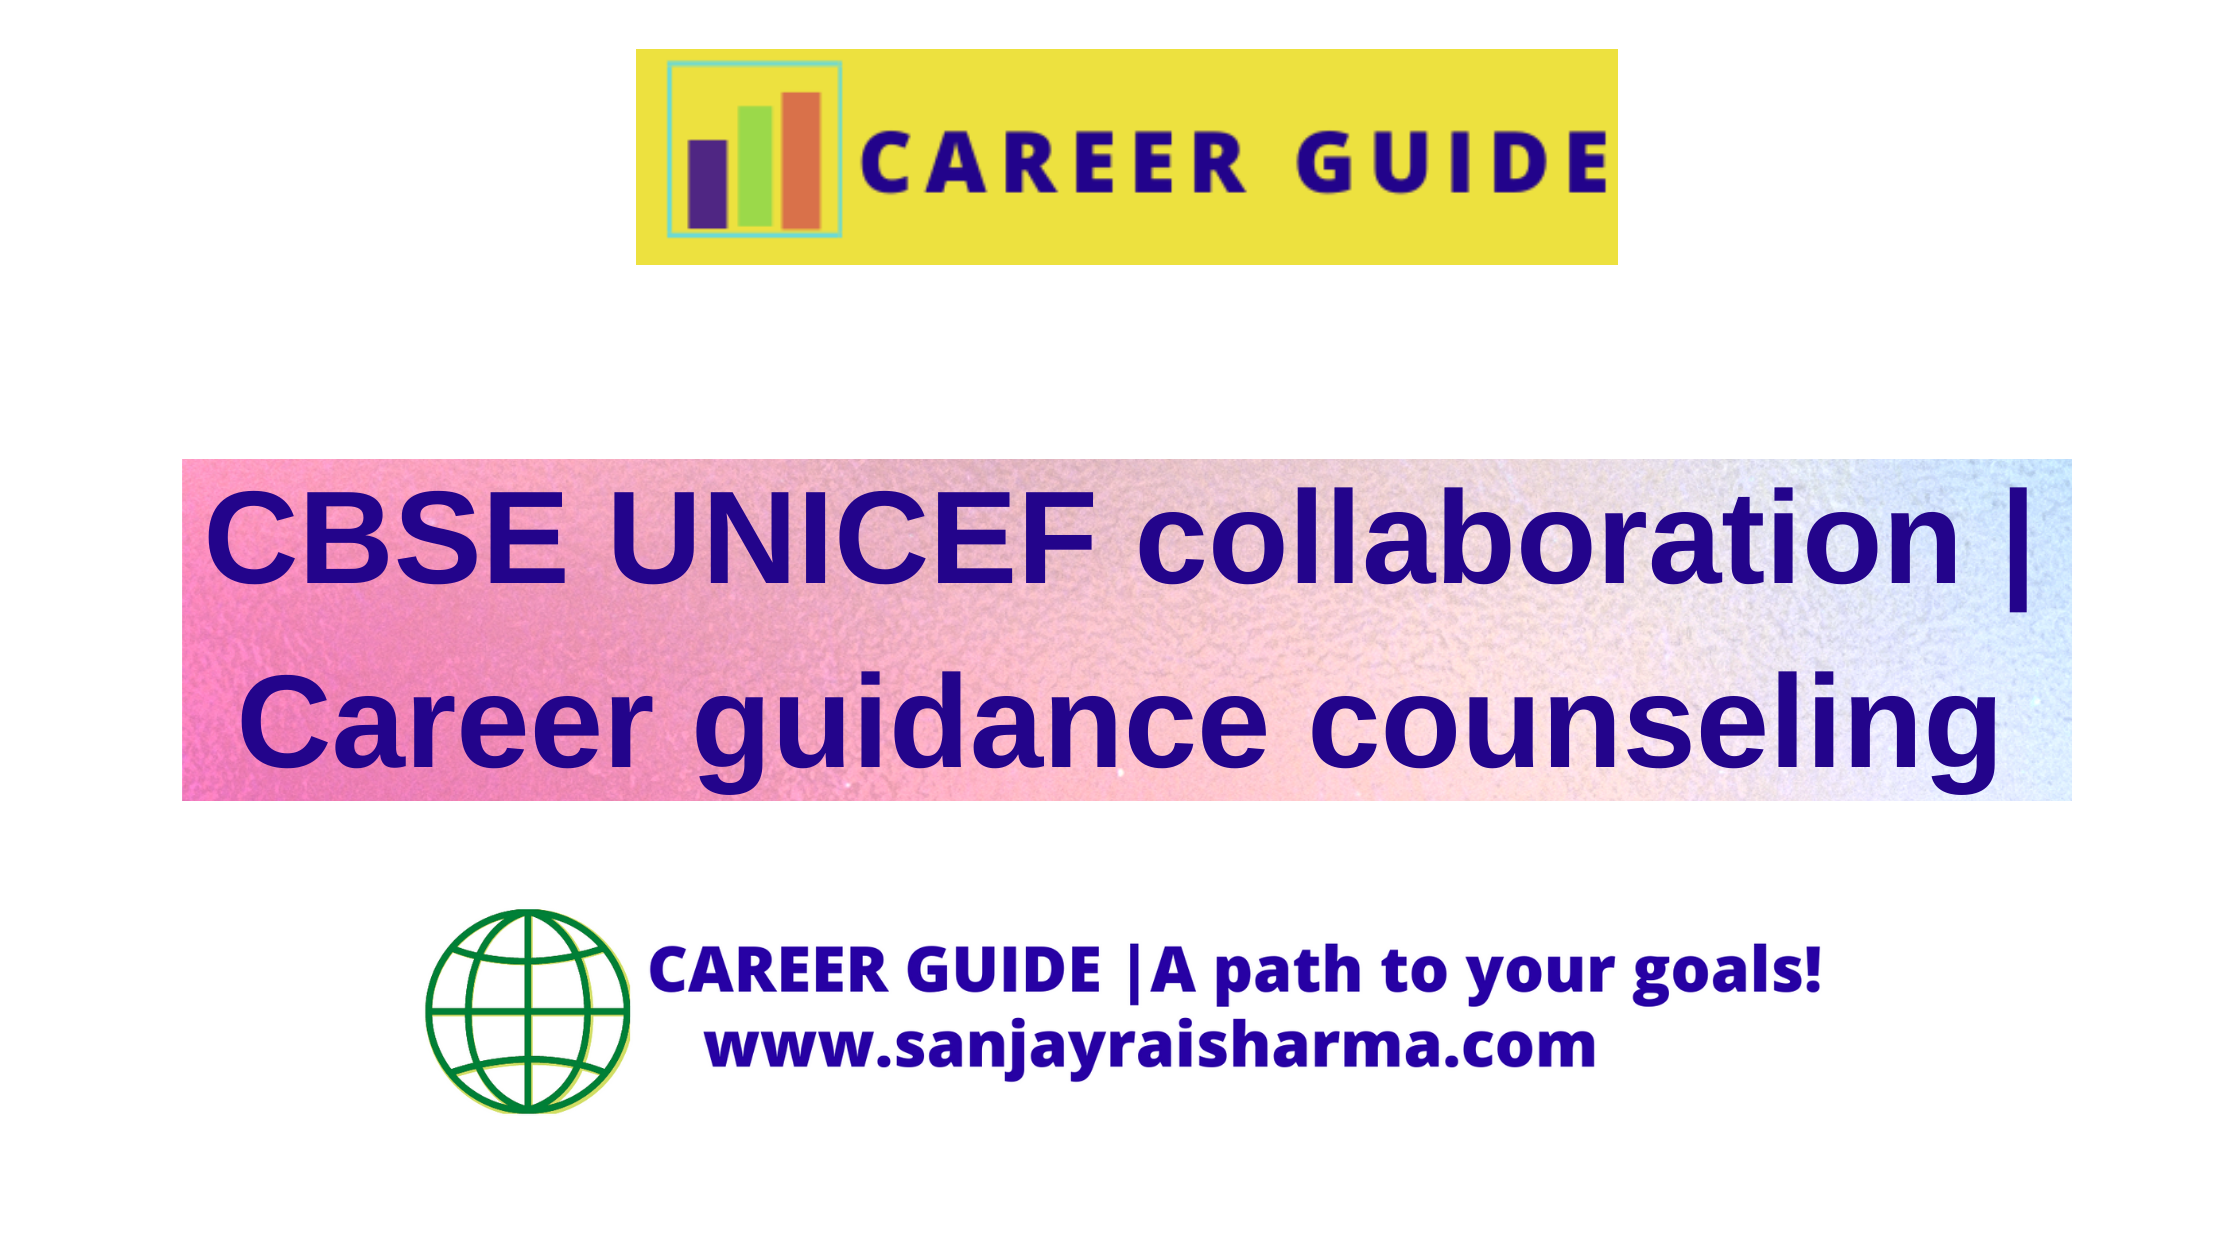 CBSE UNICEF collaboration career guidance counseling